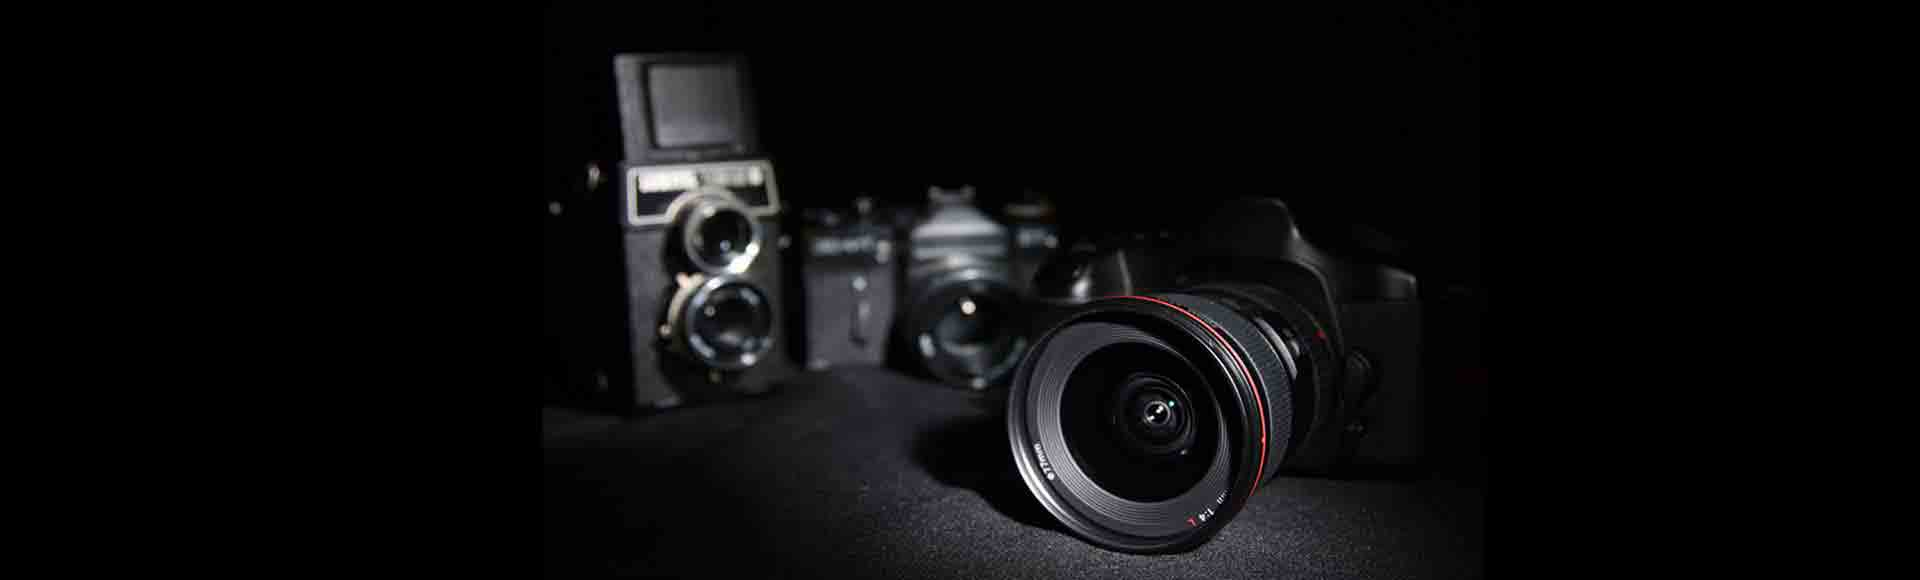 Aralco for Photography and Electronics